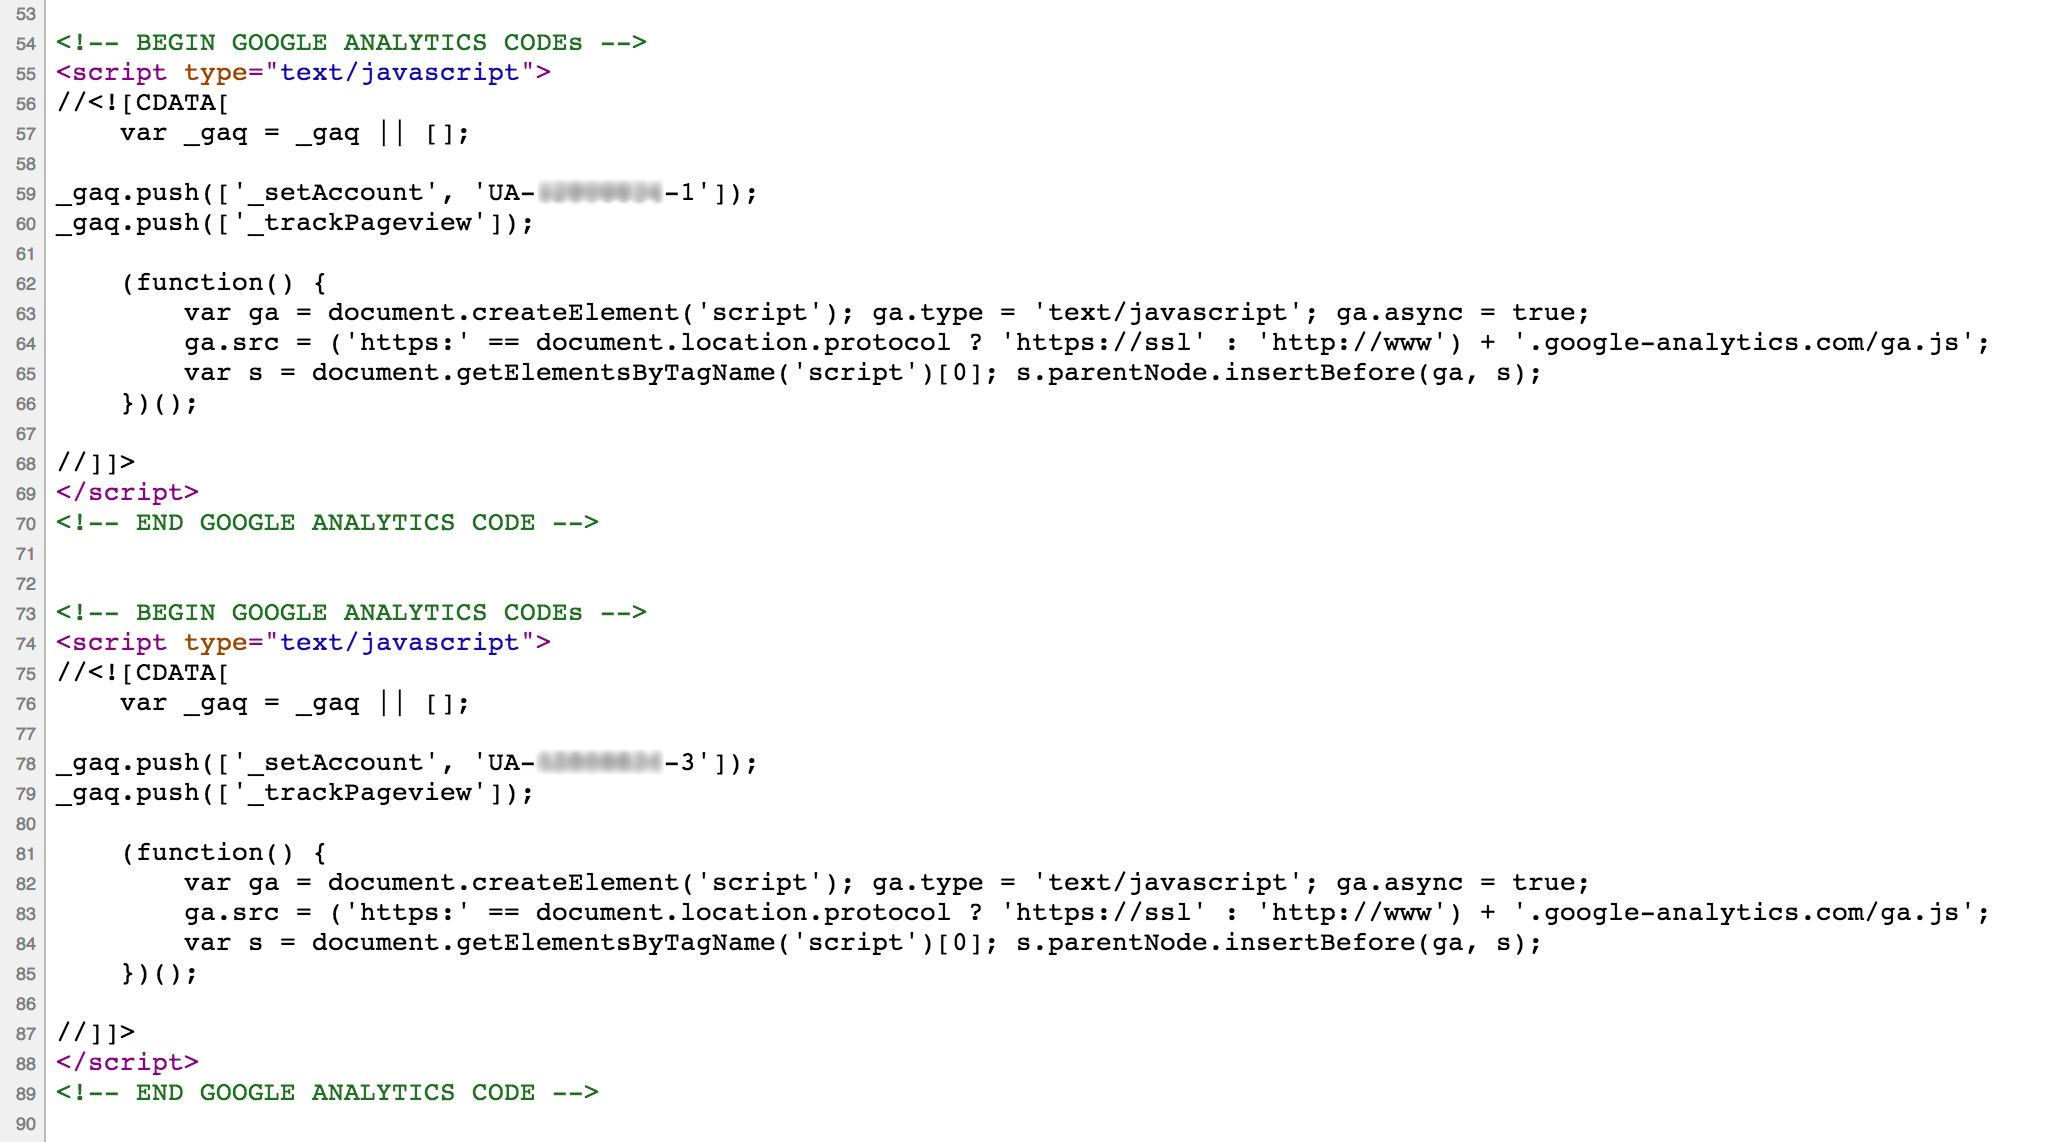 In the head section we can see that we're bring out two versions of the analytics code